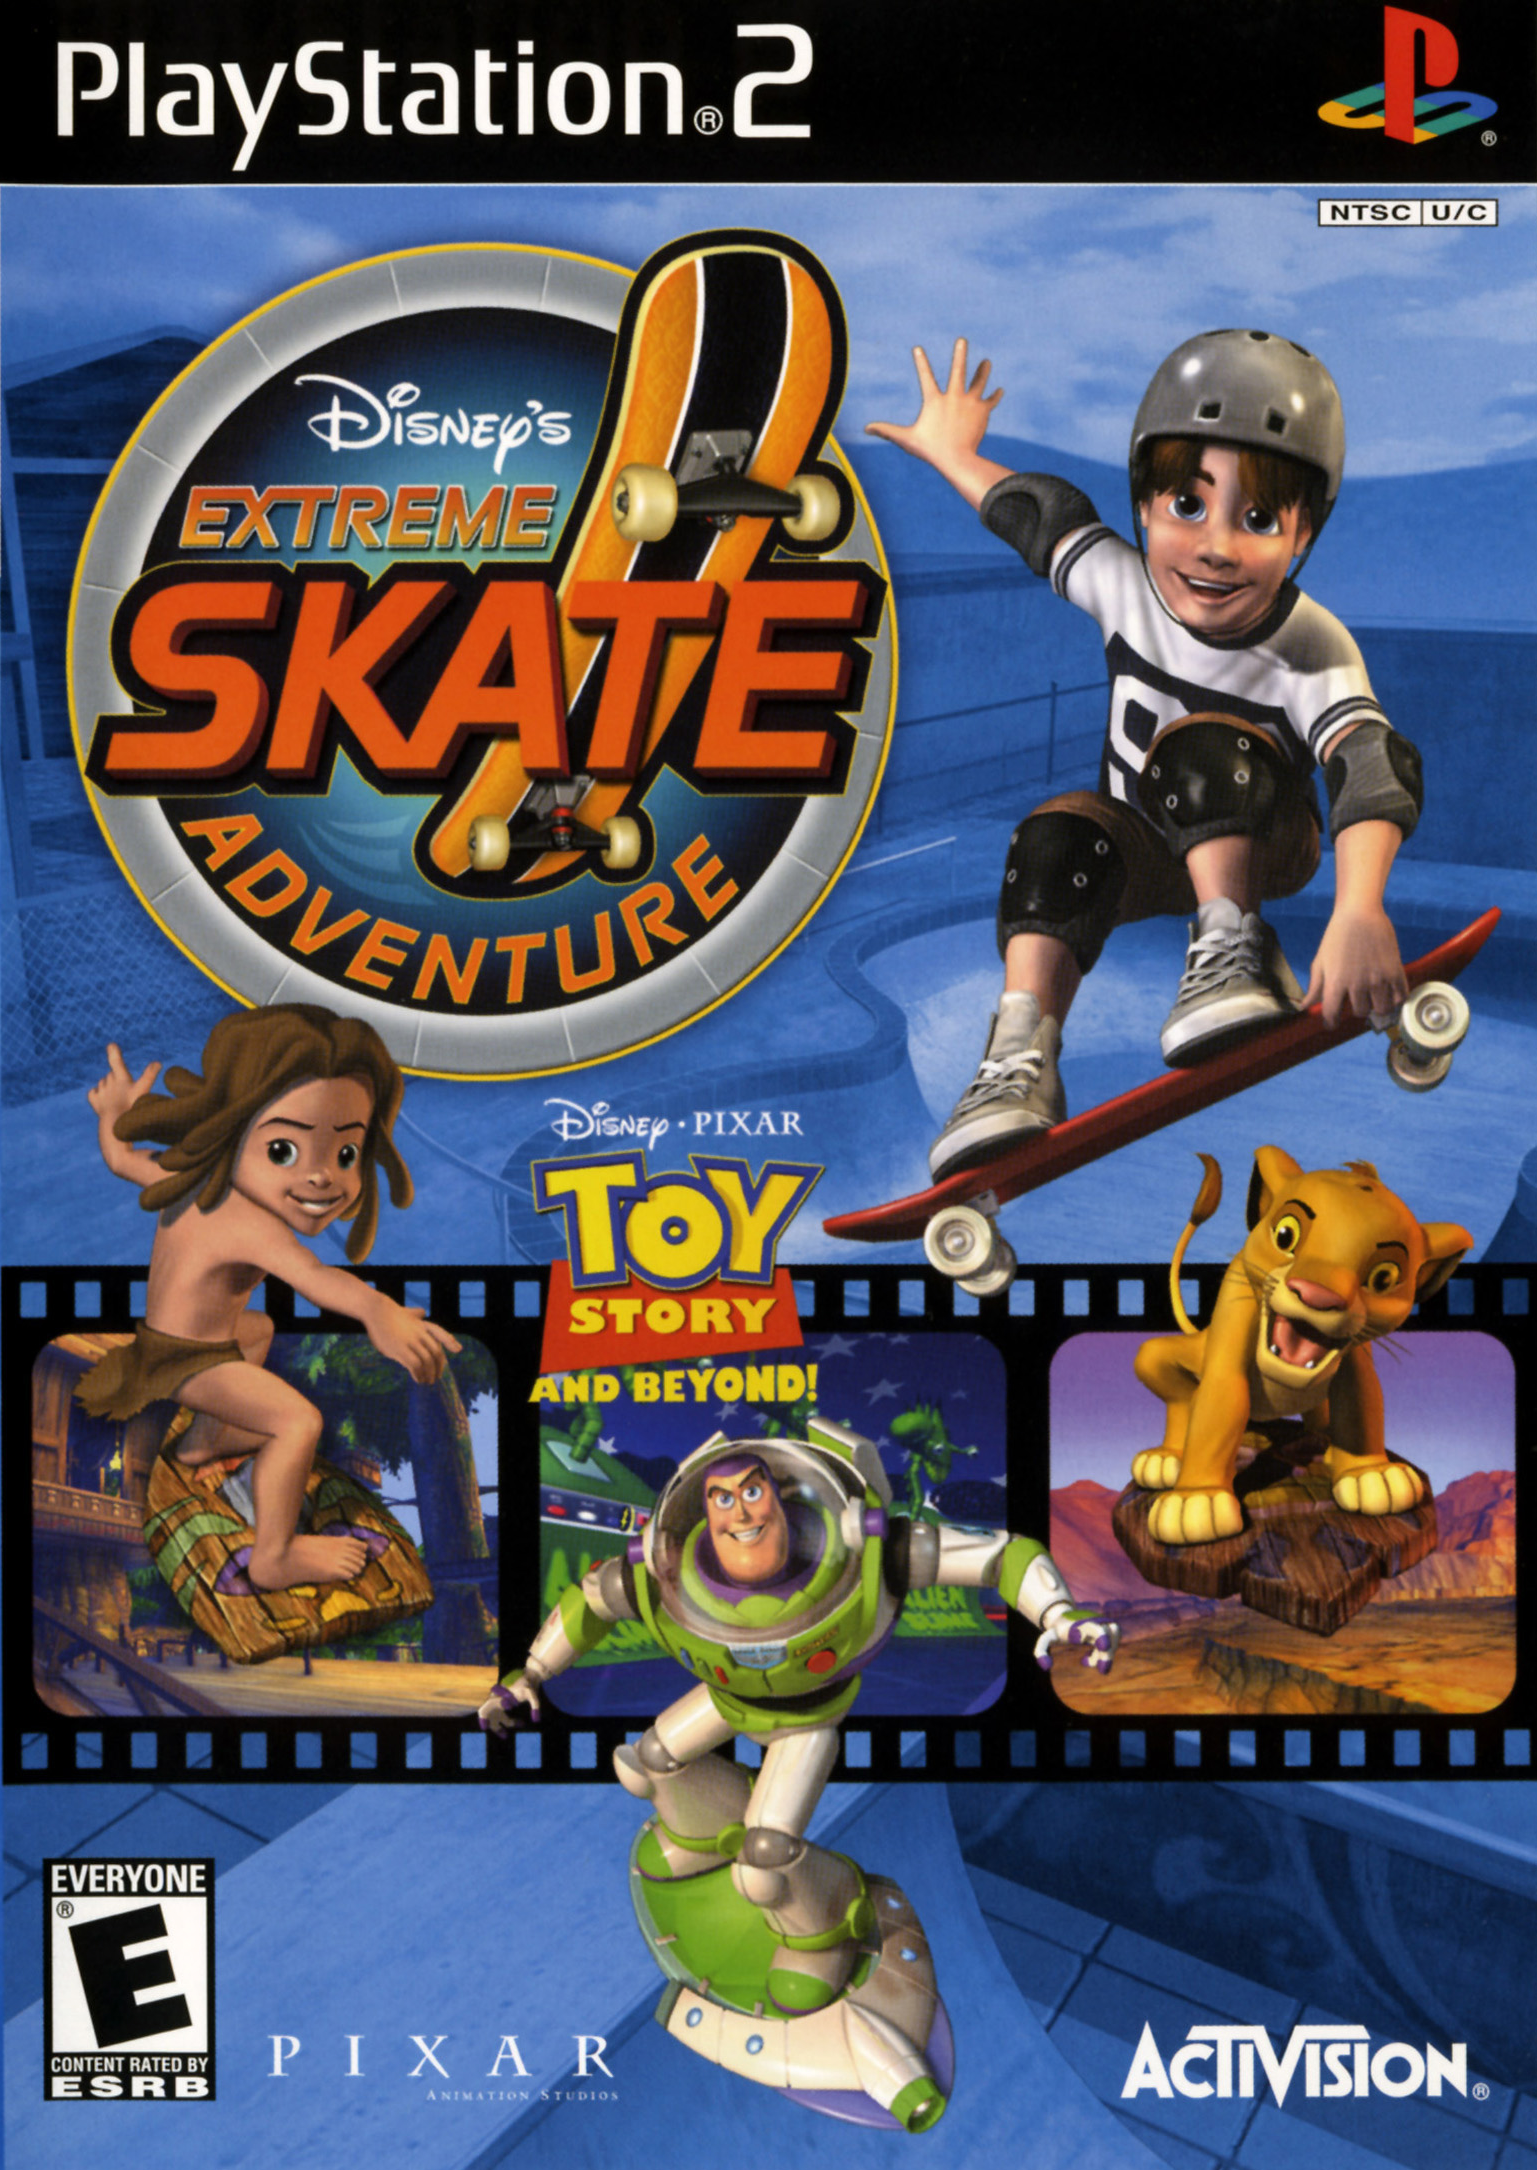 Disney's Extreme Skate Adventure | Disney Wiki | FANDOM powered by Wikia